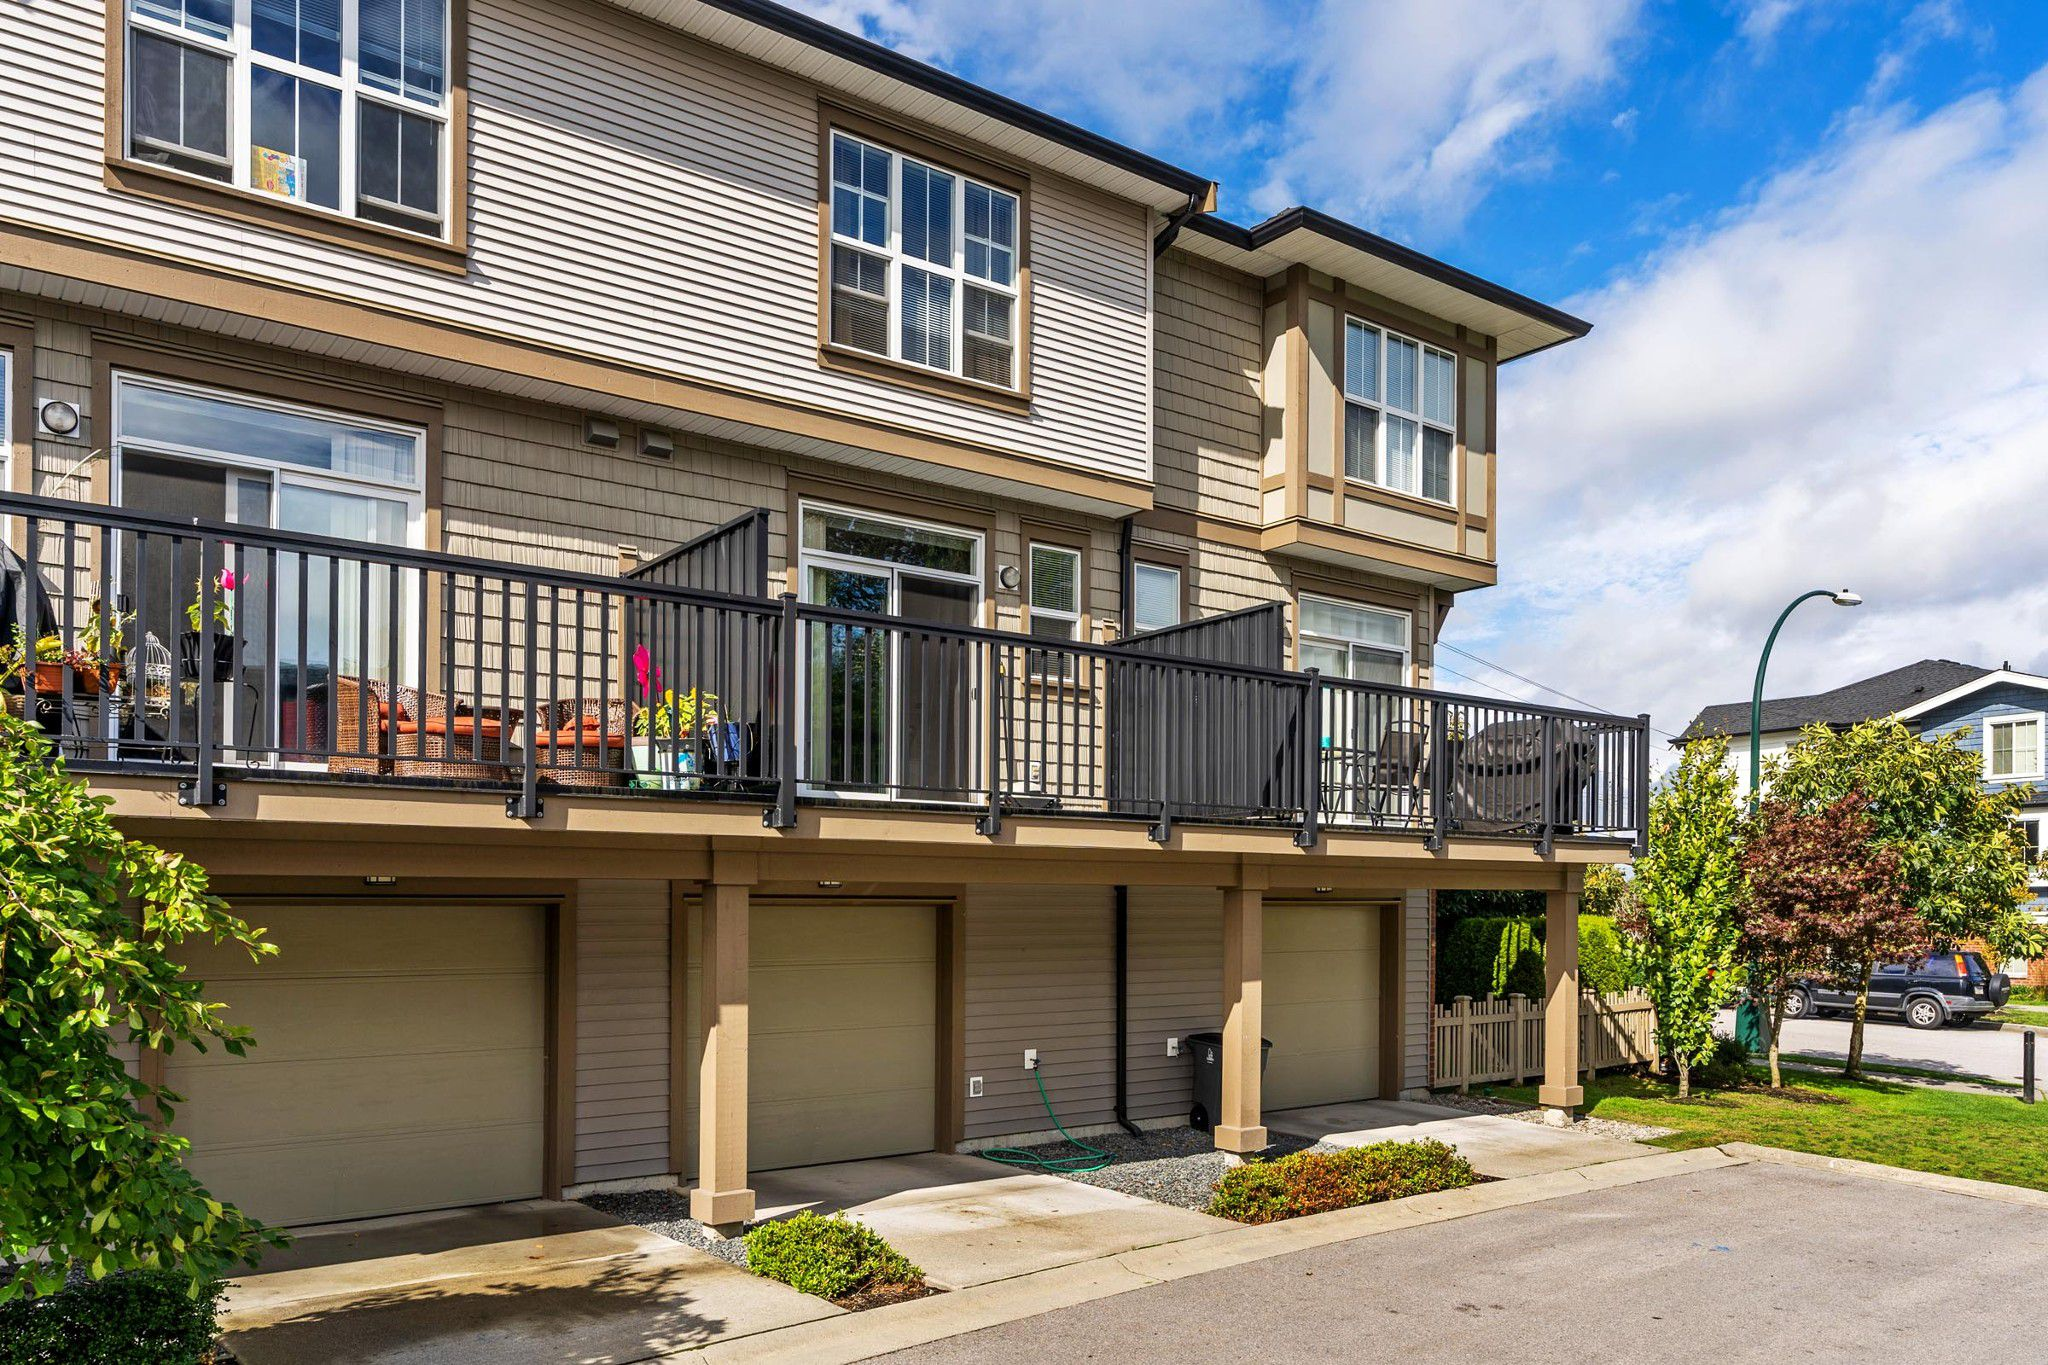 """Main Photo: 90 14838 61 Avenue in Surrey: Sullivan Station Townhouse for sale in """"Sequoia"""" : MLS®# R2309652"""